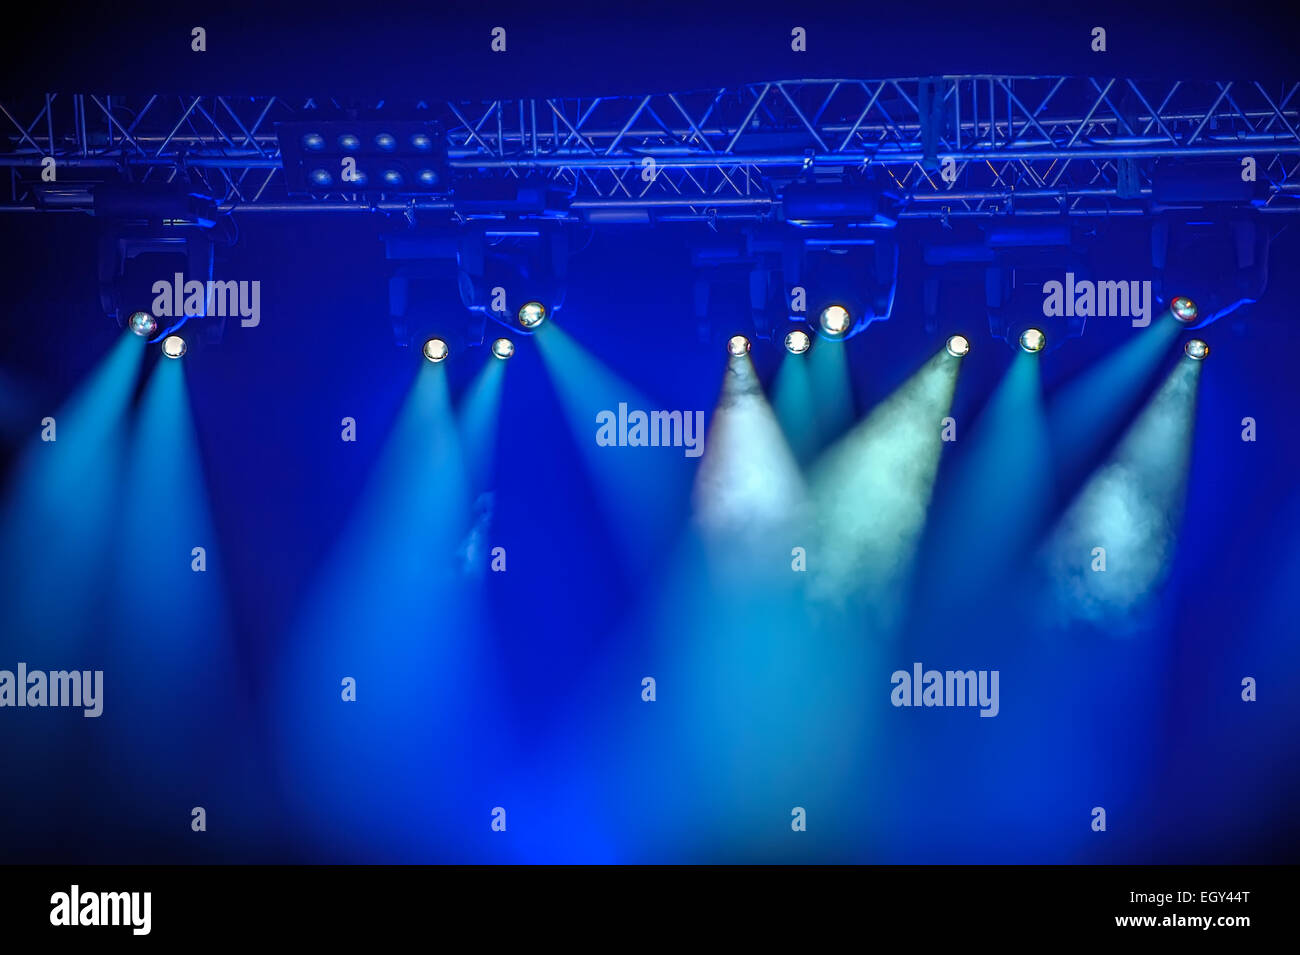 Blue stage spotlights hanging on lighting pipe systems - Stock Image